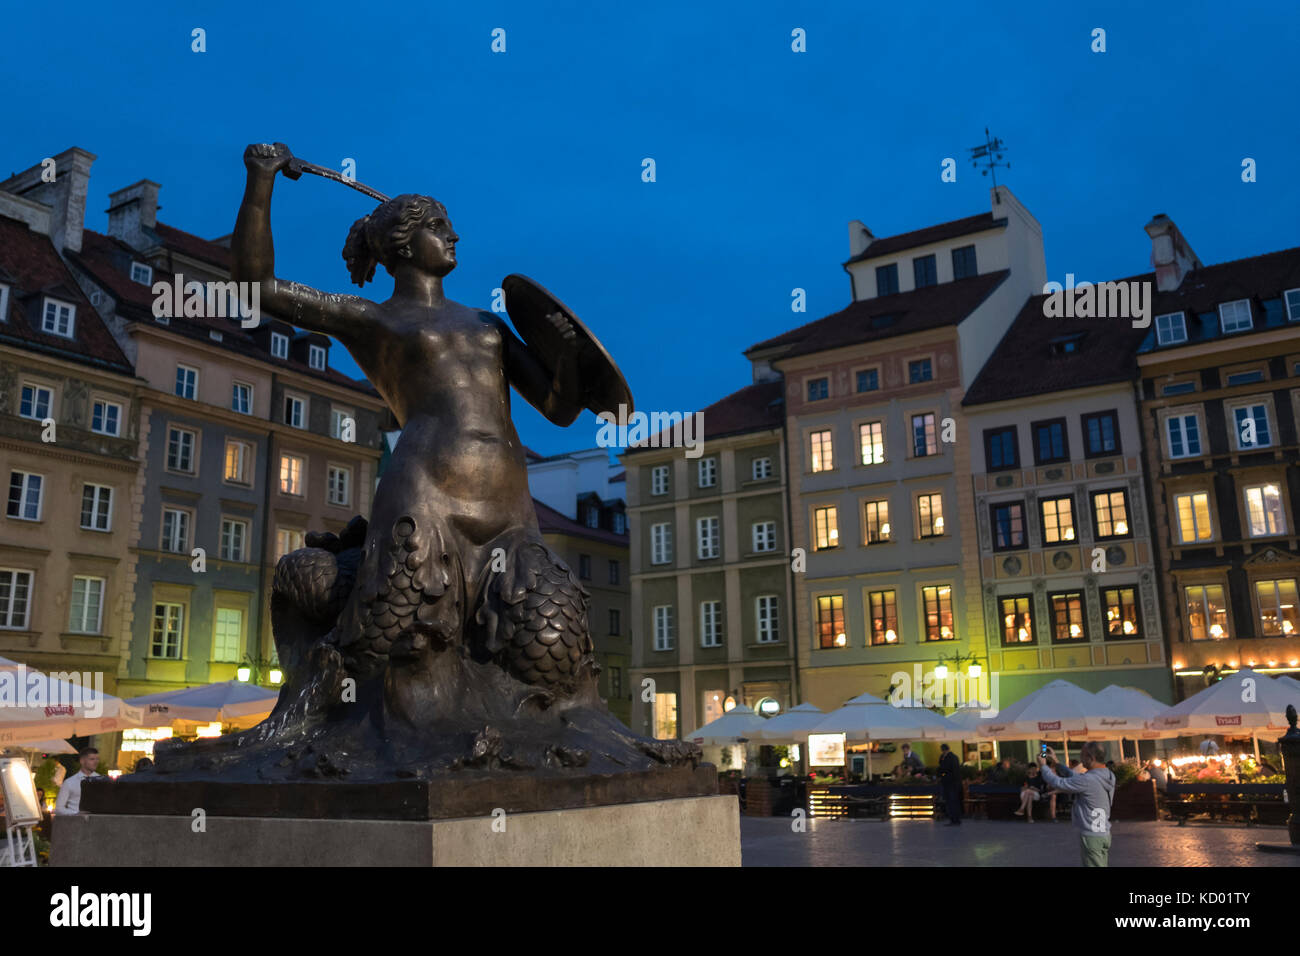 The Mermaid Statue in the Old Town Square of Rynek Starego Miasta, Warsaw, Poland, - Stock Image